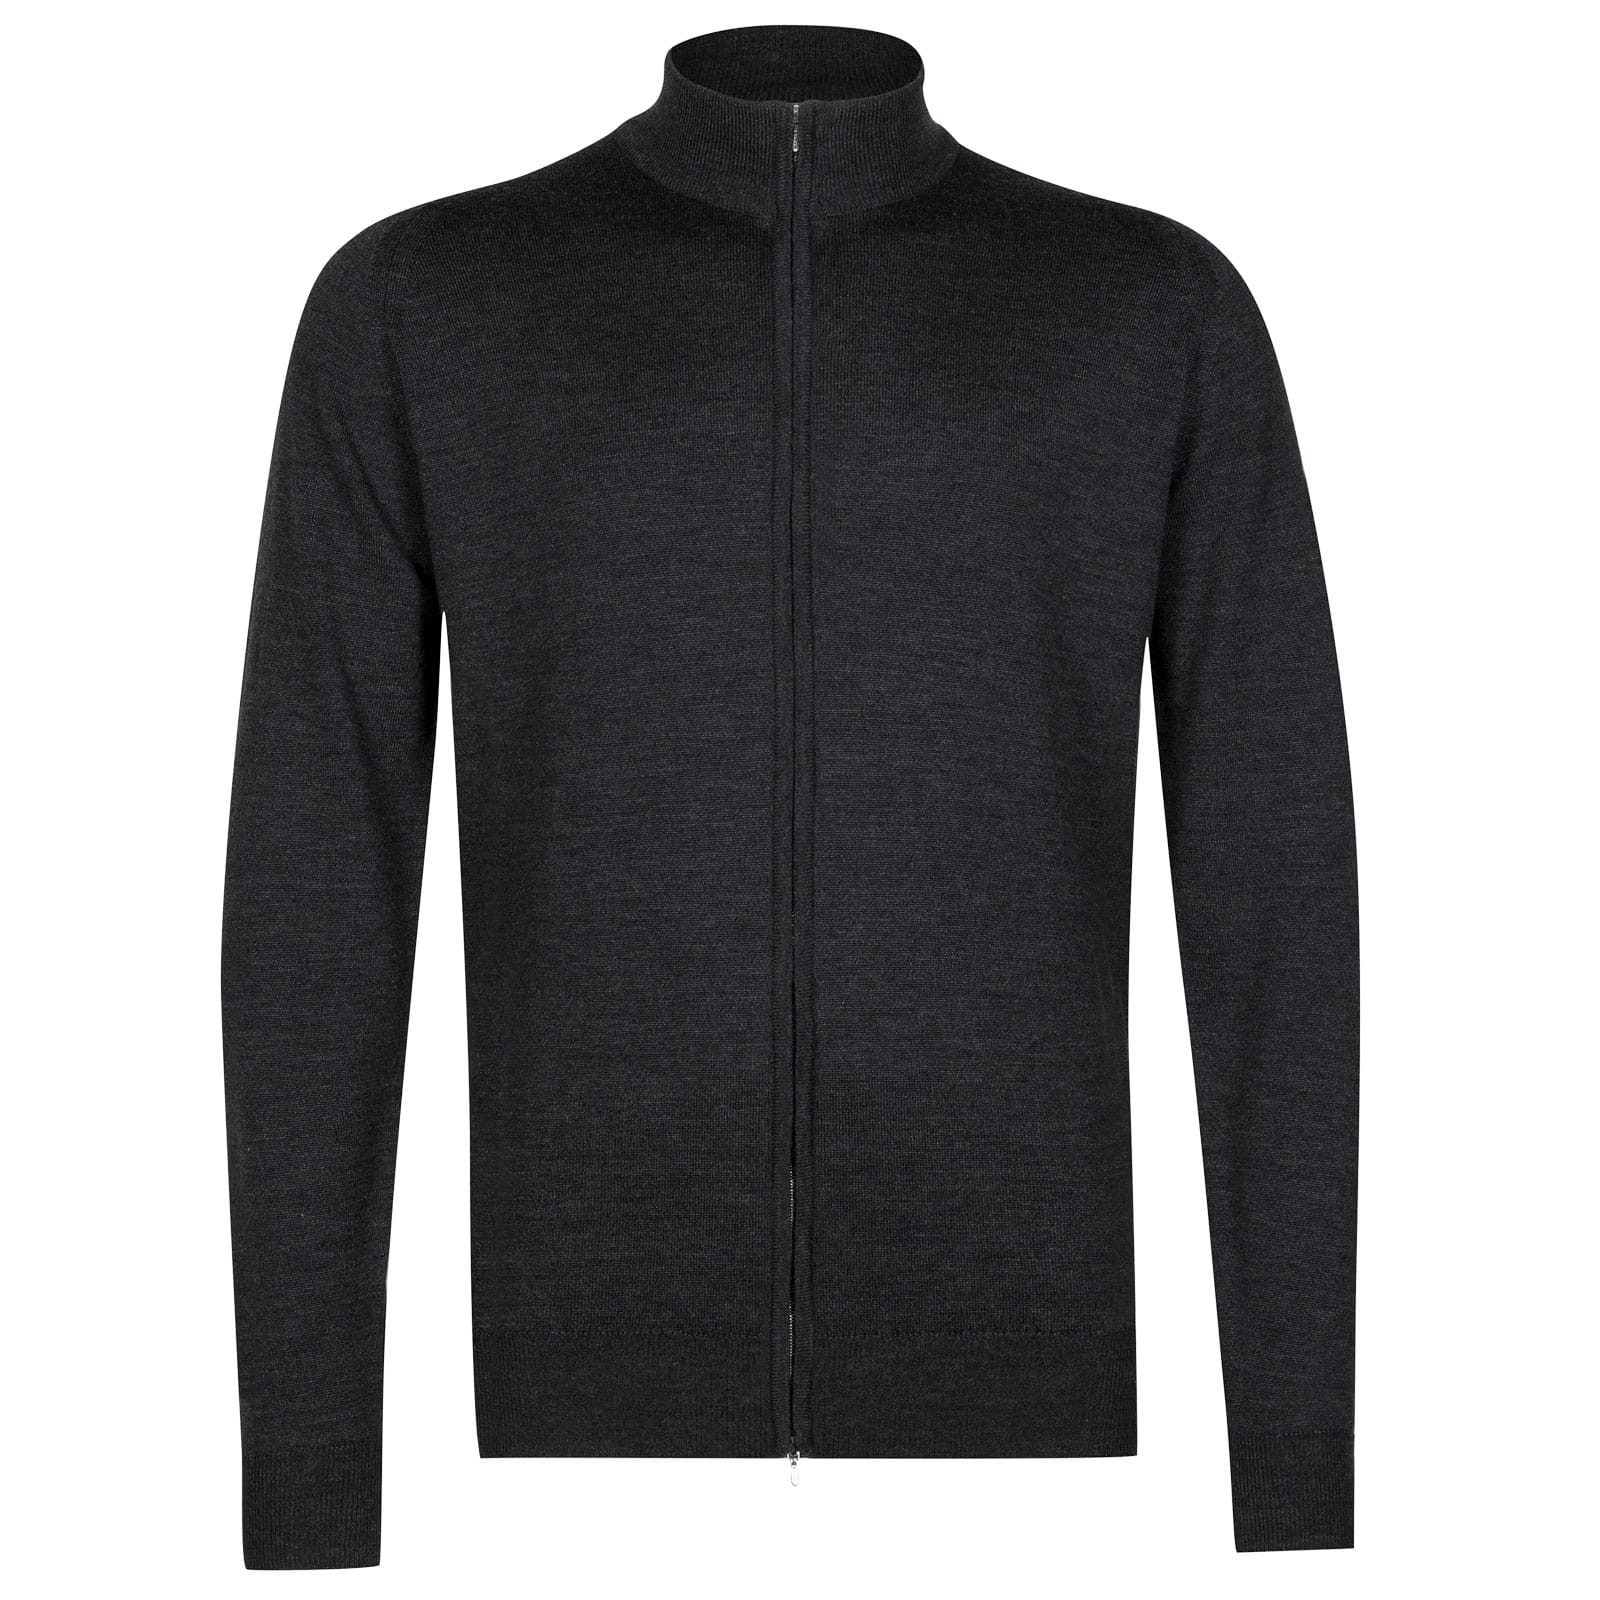 John Smedley claygate Merino Wool Jacket in Charcoal-XL